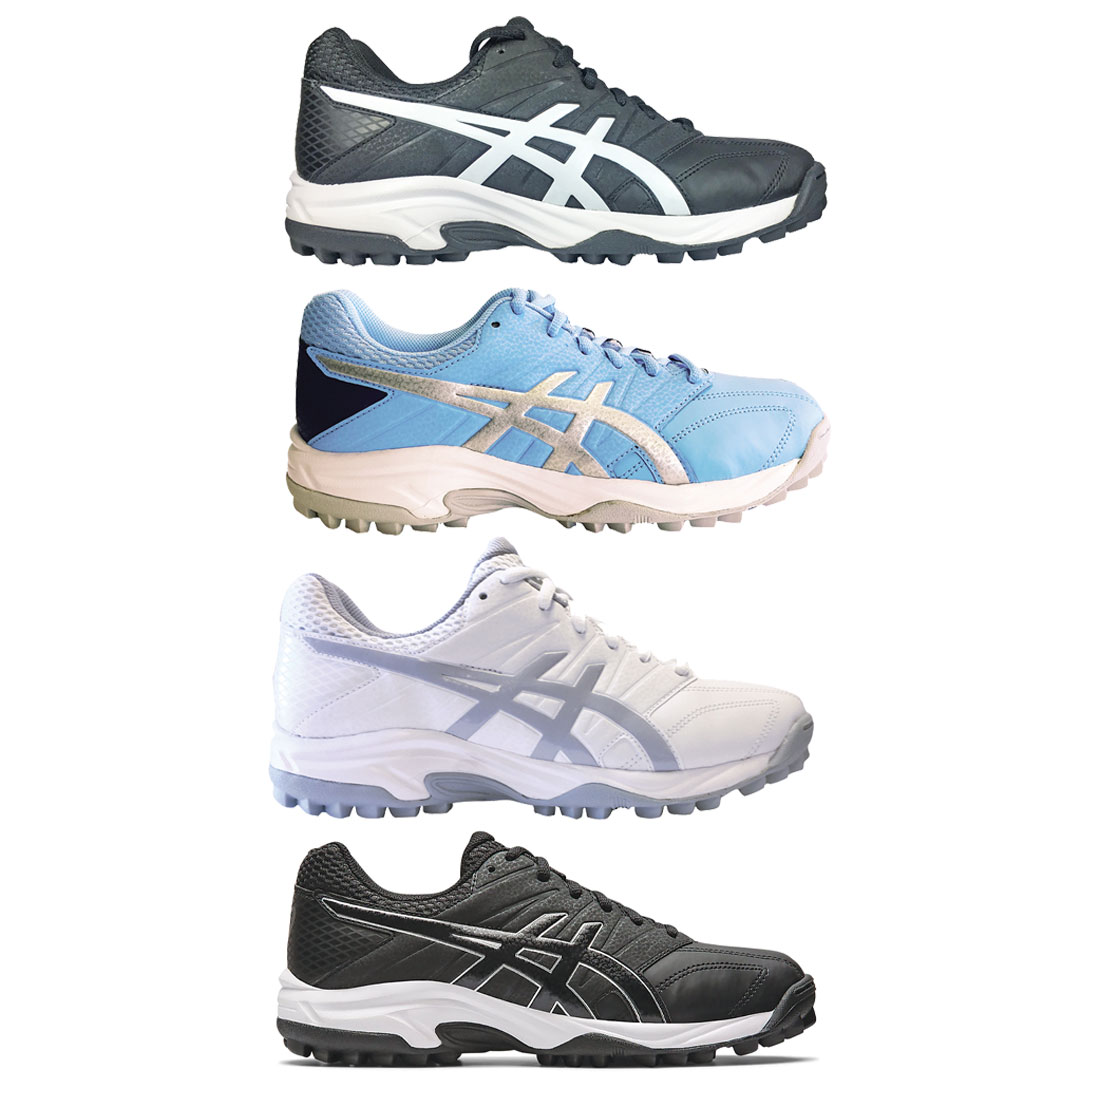 3aa30f957144 Asics Gel-Lethal MP7 Turf Shoe - longstreth.com